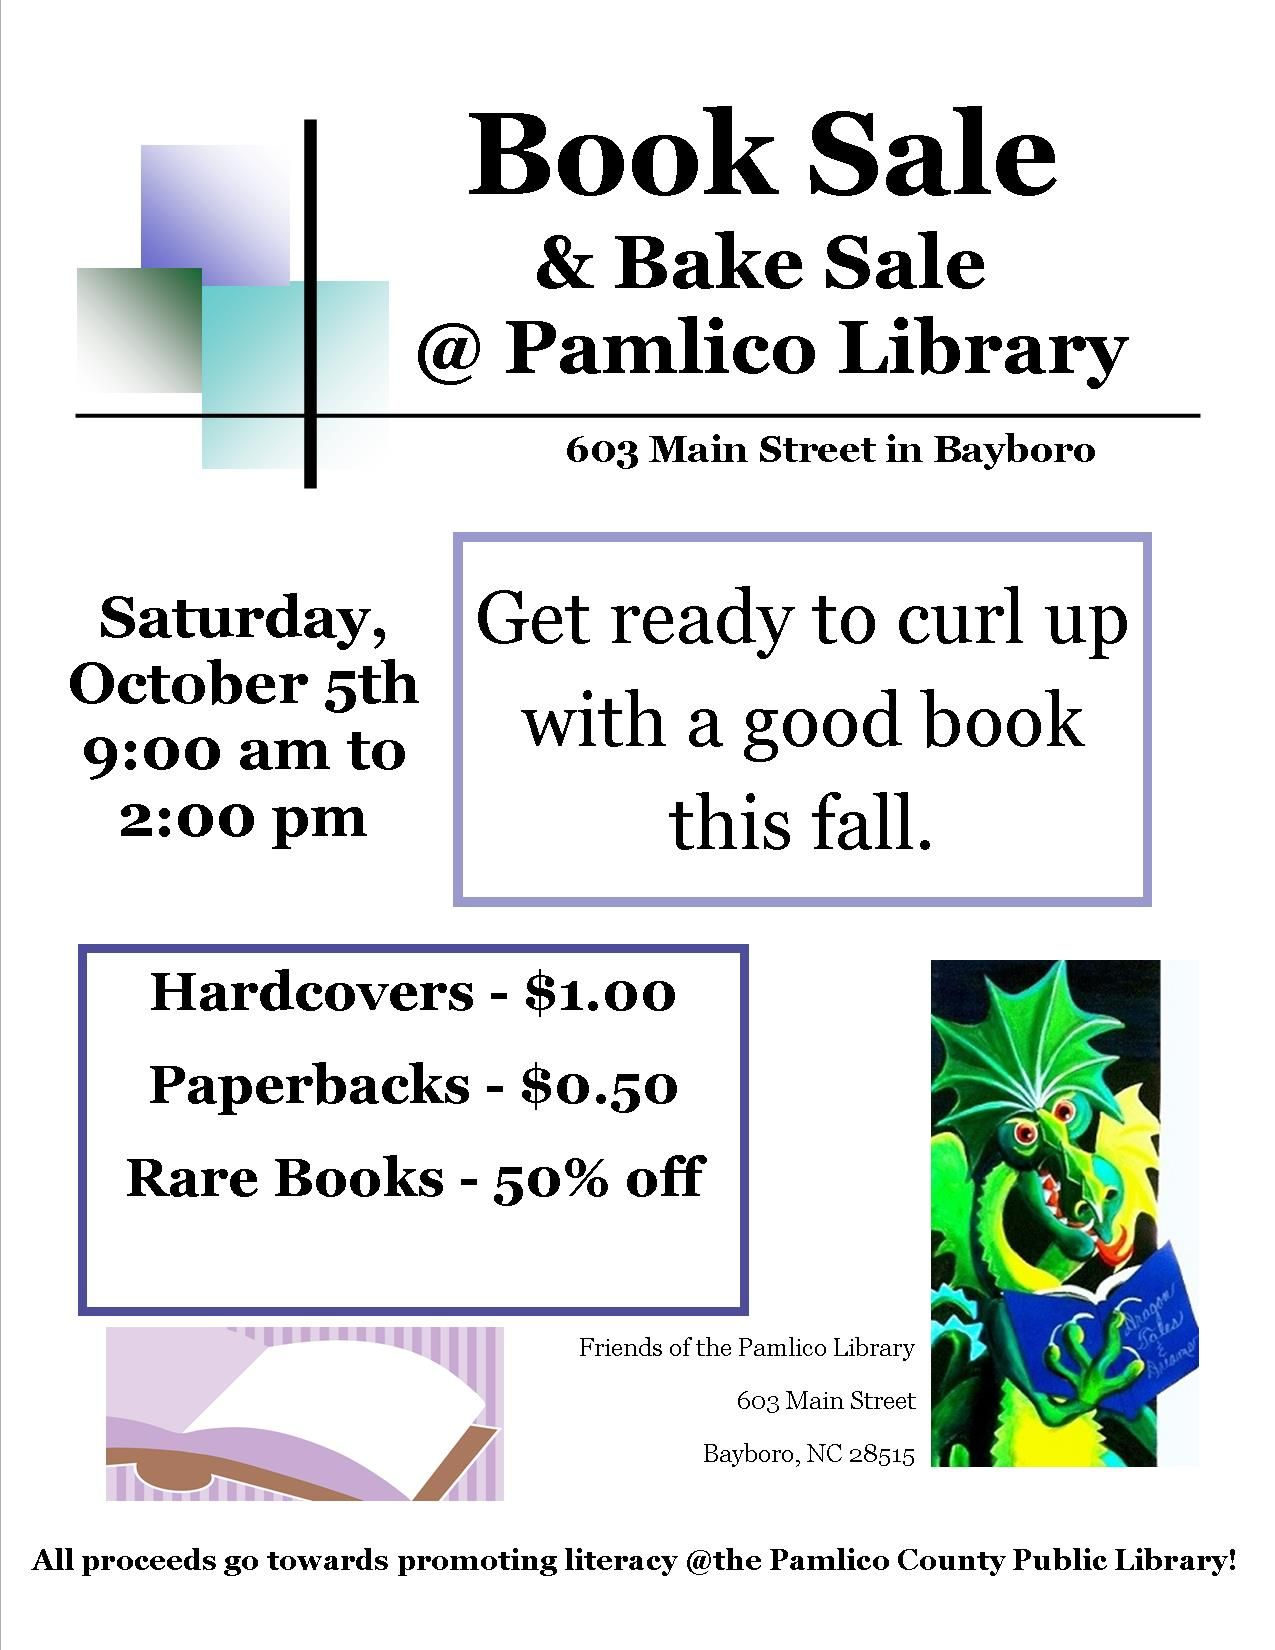 Best book sale in Pamlico County!